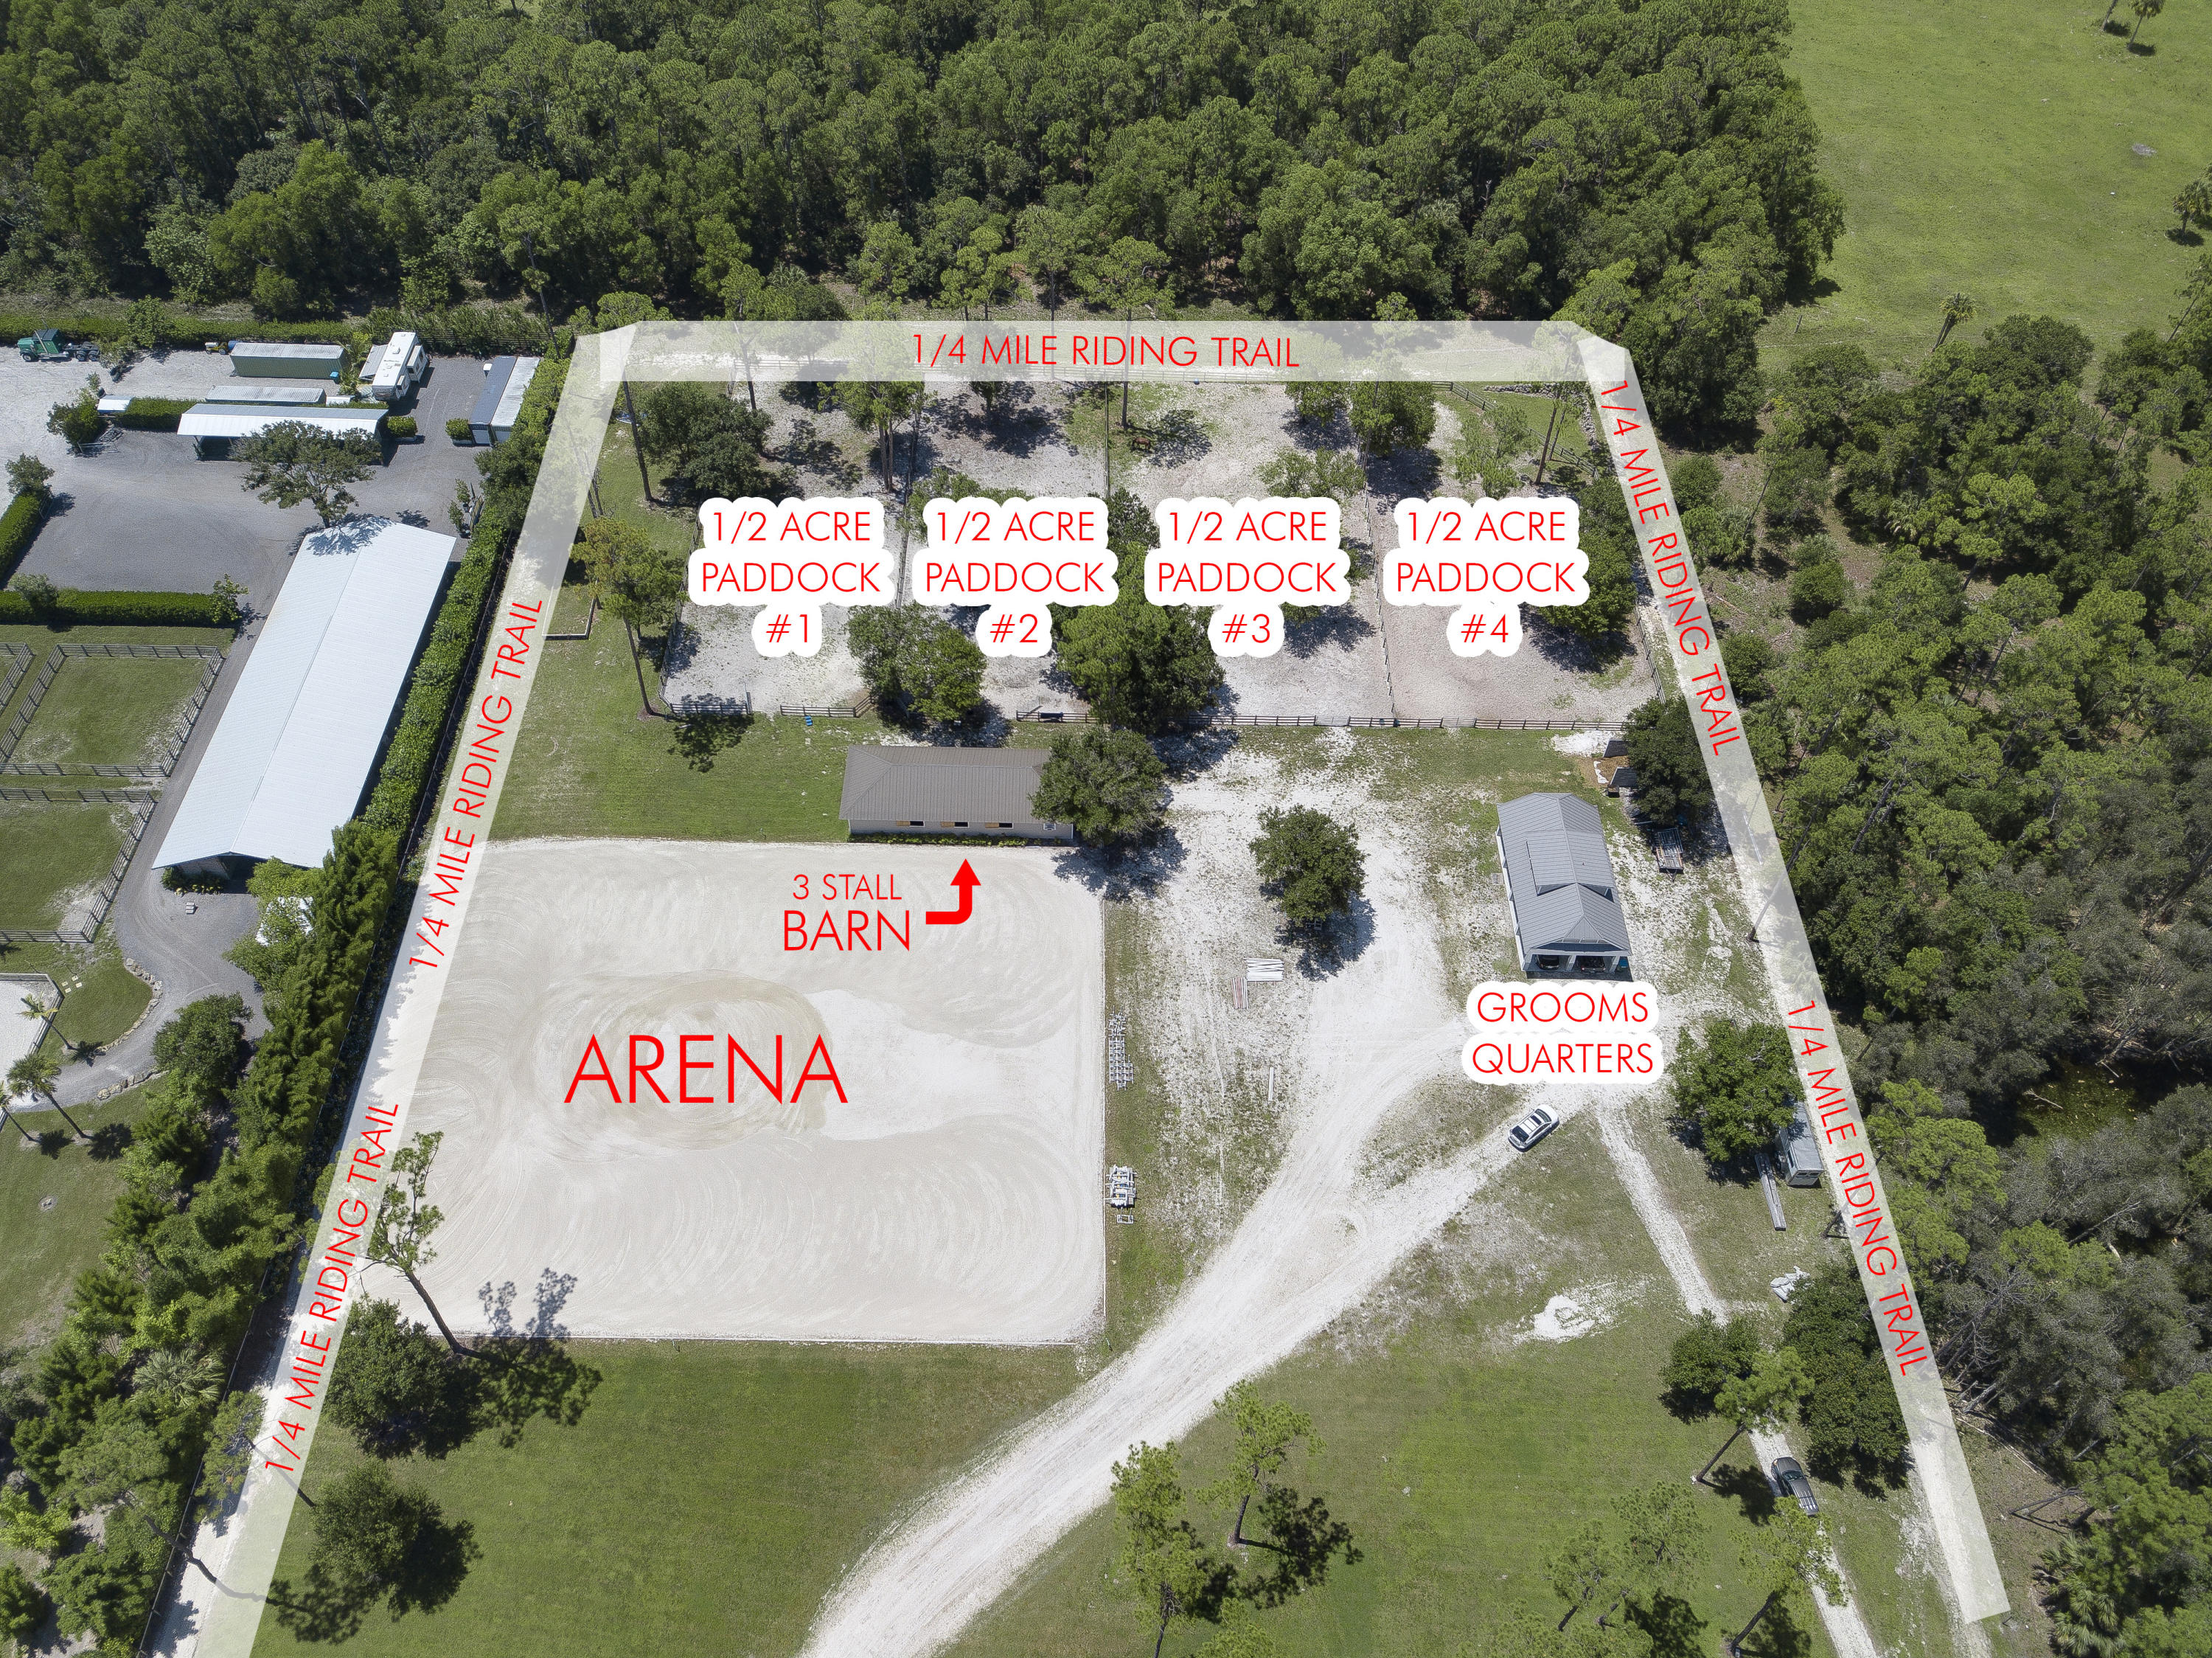 14120 6th Court, Loxahatchee Groves, Florida 33470, ,Barn,For Sale,Equestrian Escape,6th,RX-10548180